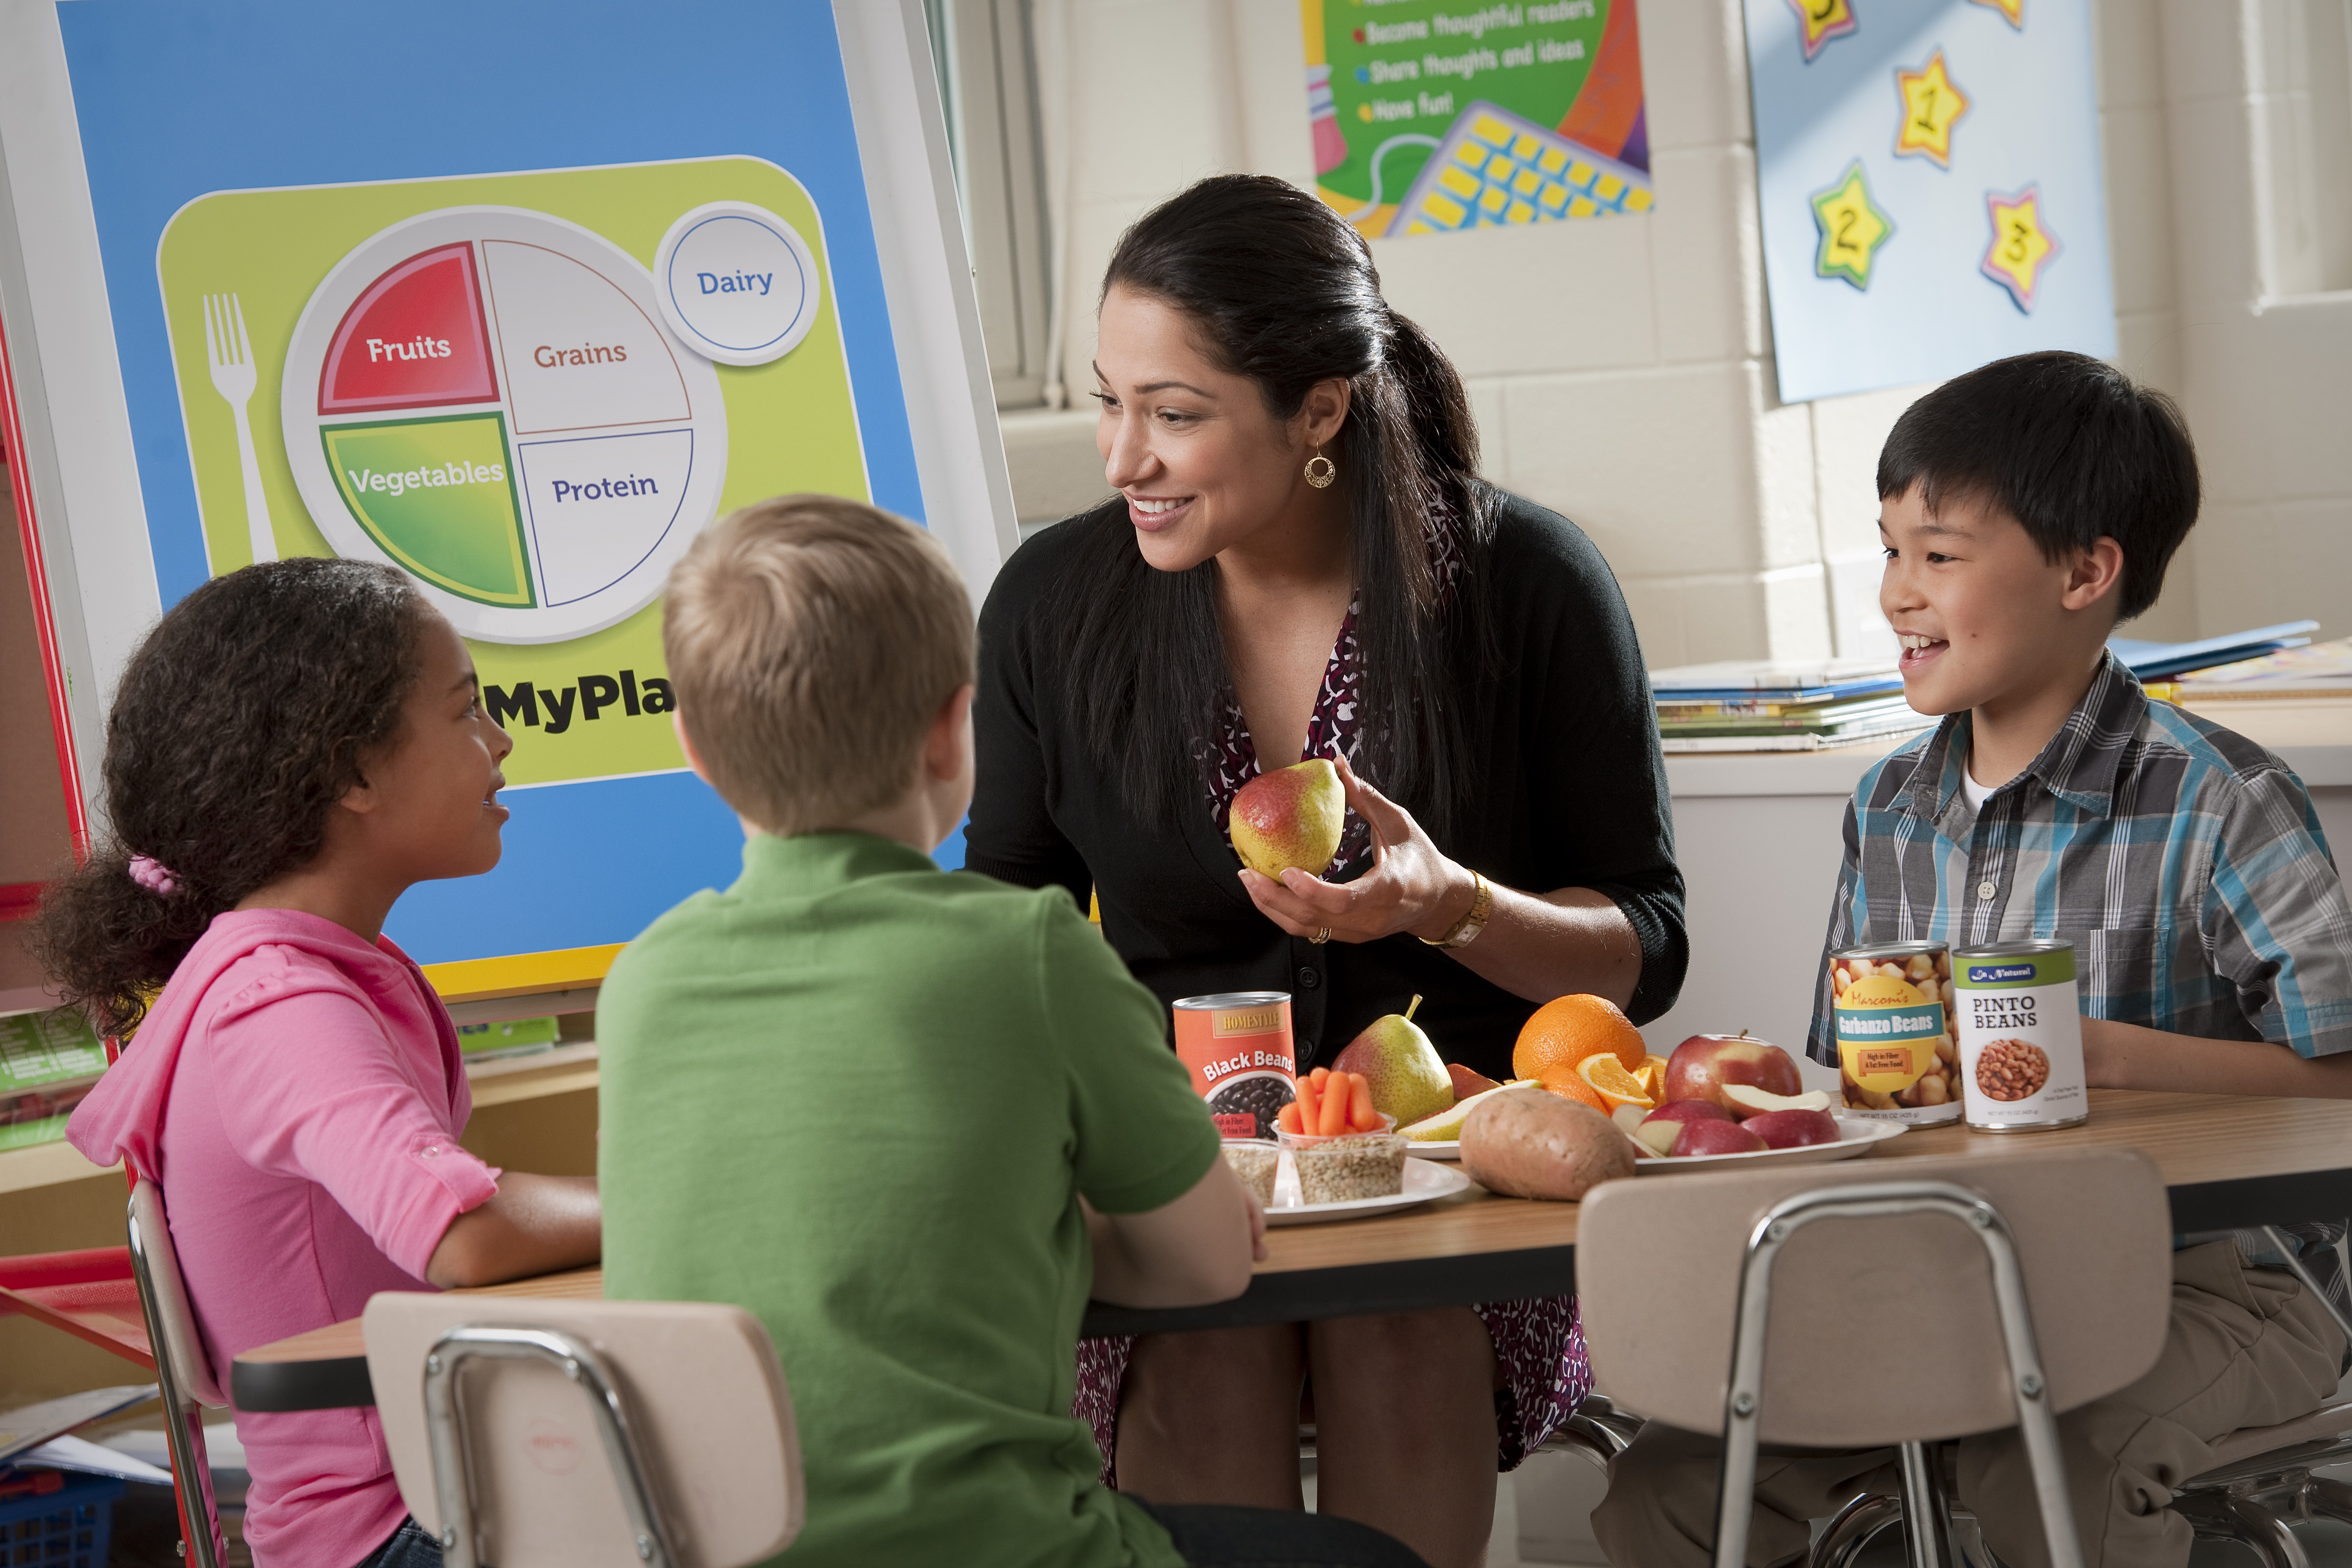 A hispanic teacher working with three students about nutrition